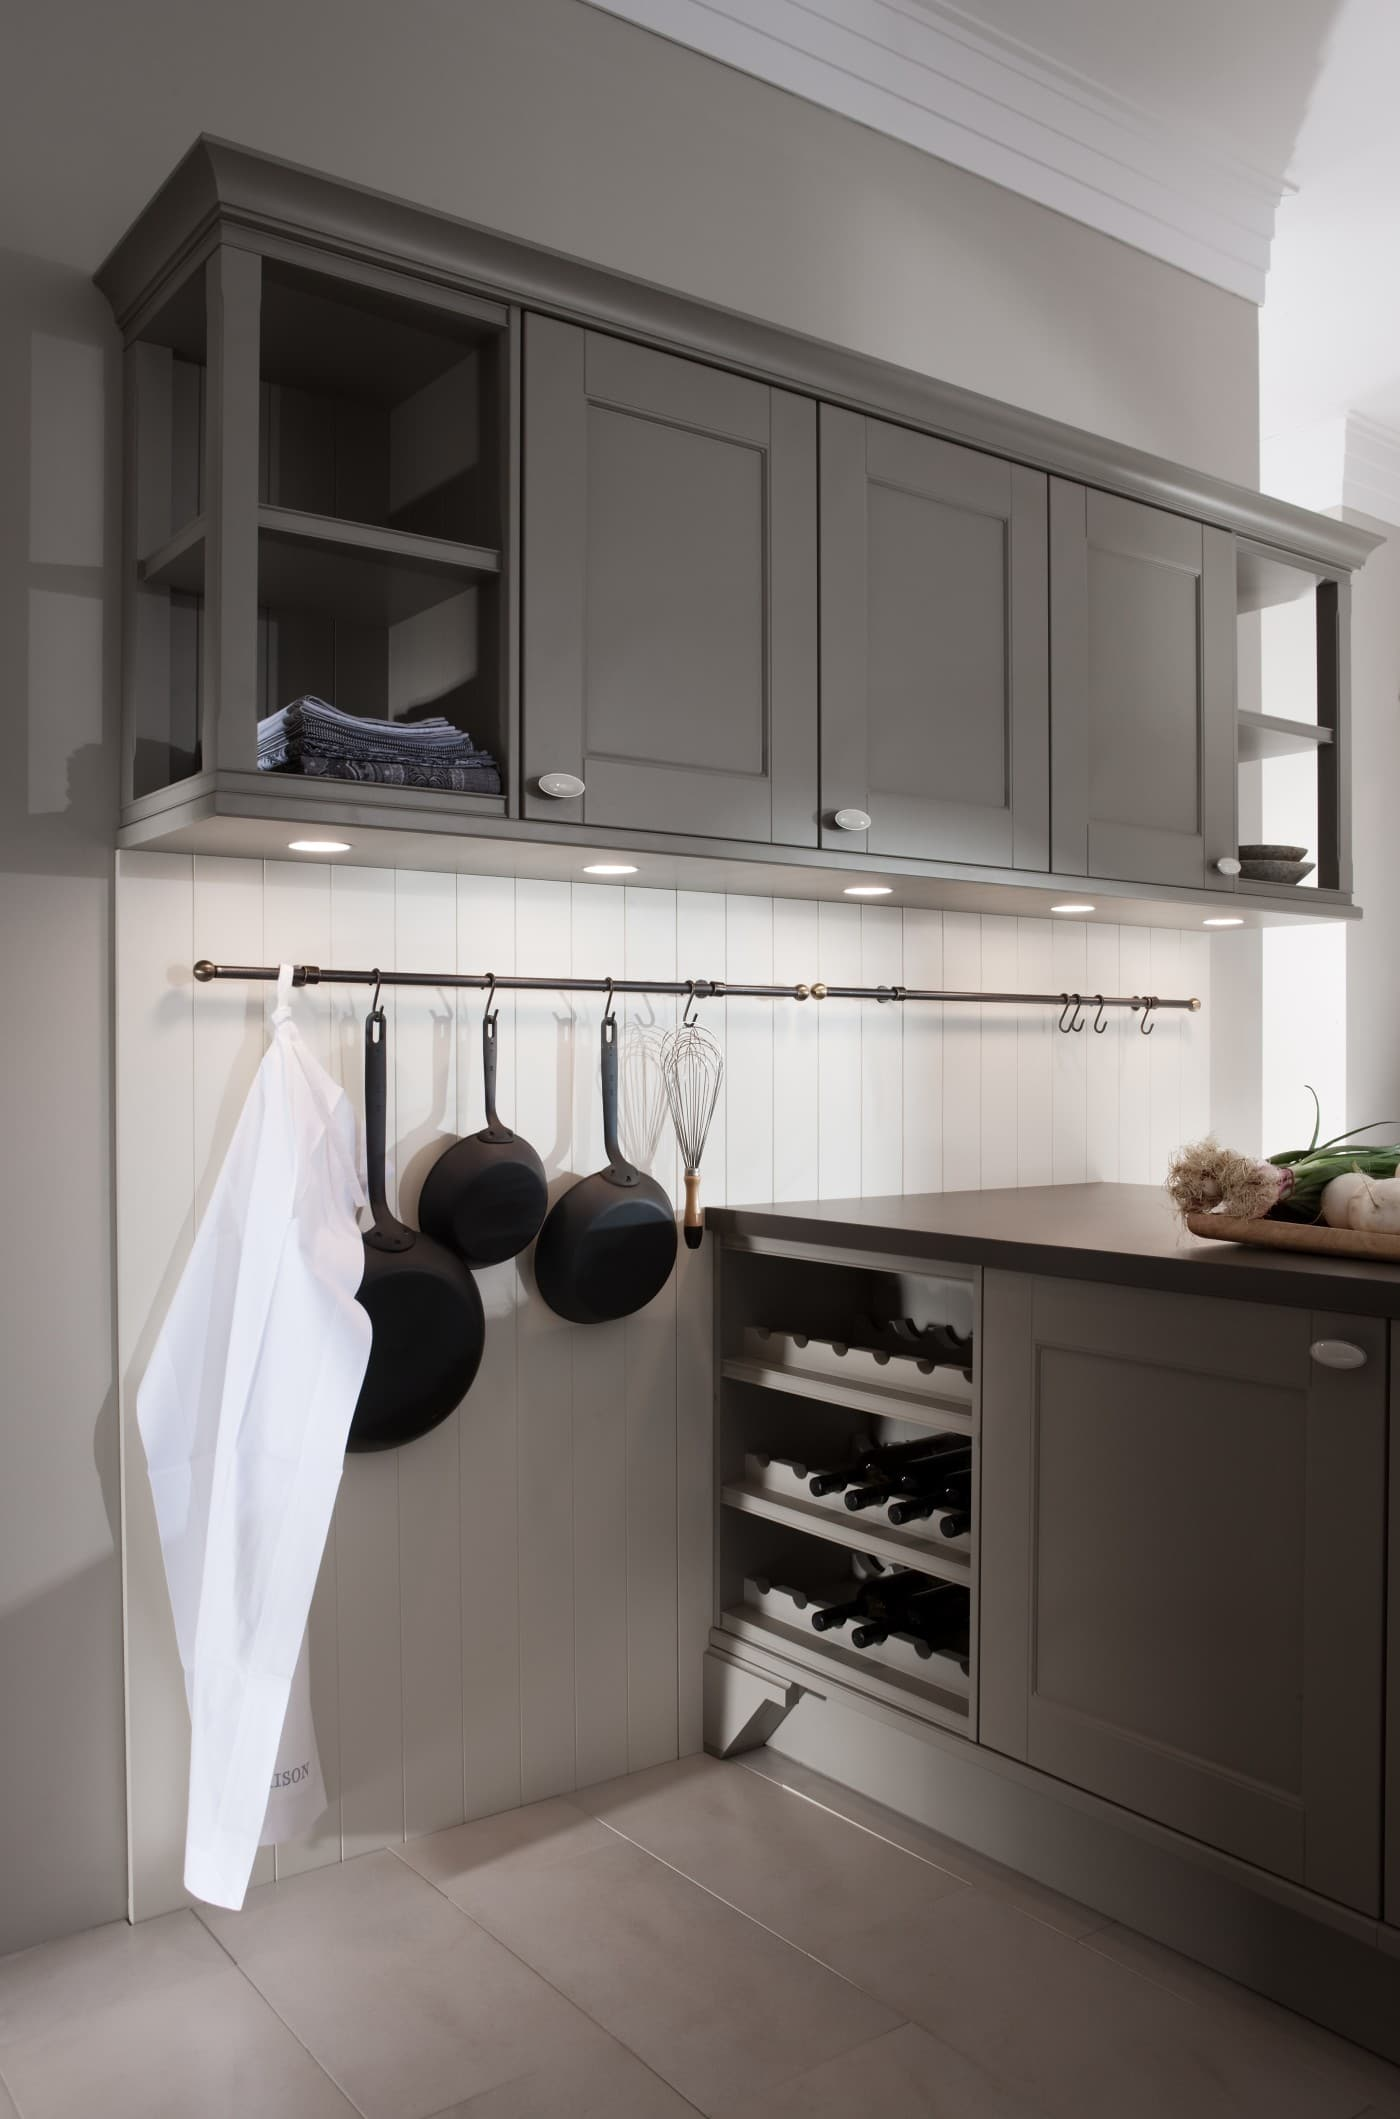 quality brand kitchen cabinets lowes cabinet handles domus leicht kitchens - traditional london elan ...